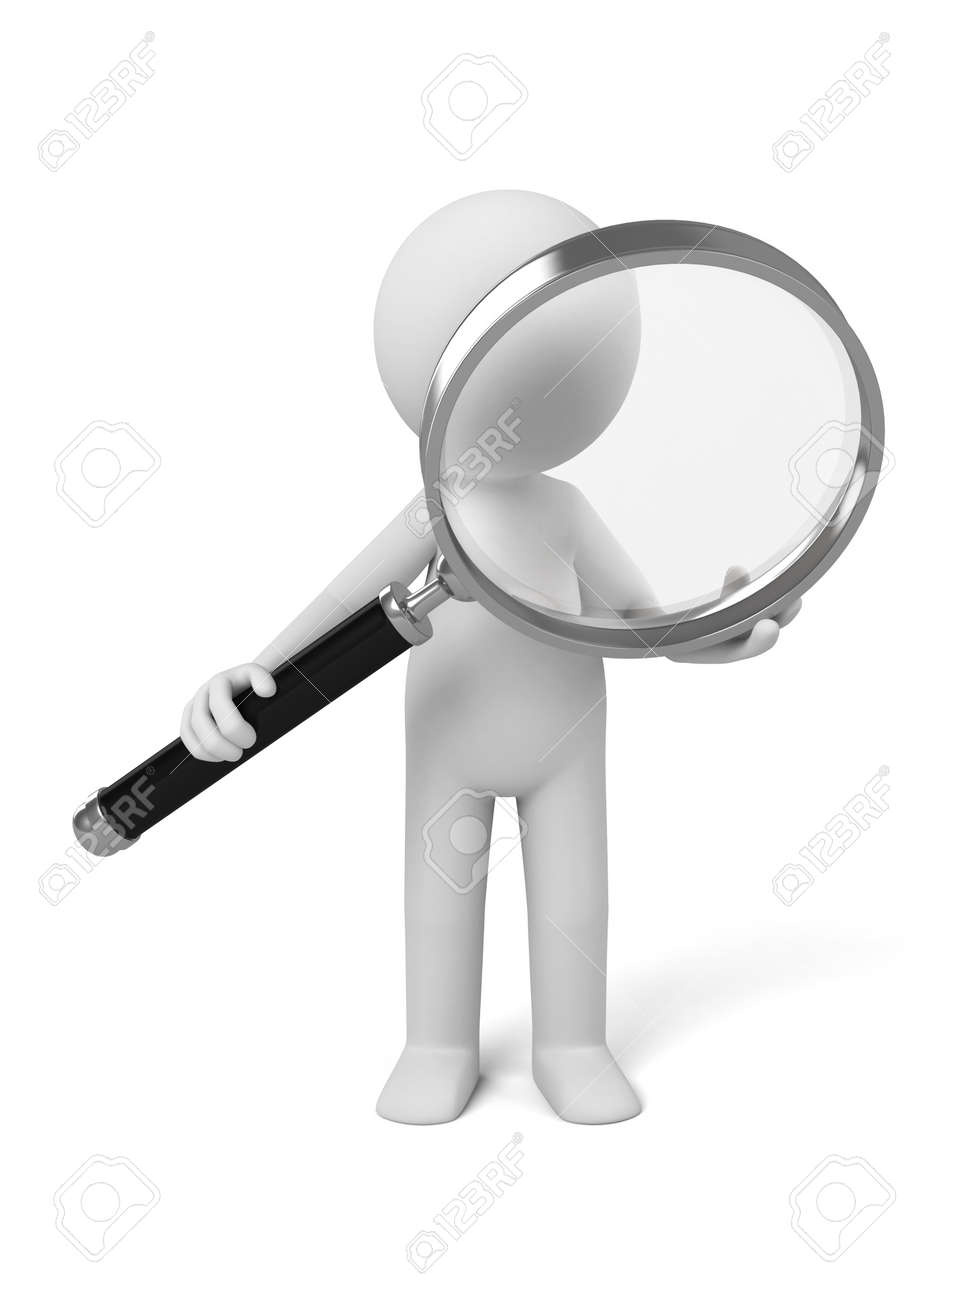 A 3d people with a magnifier. 3d image. Isolated white background. - 36059625